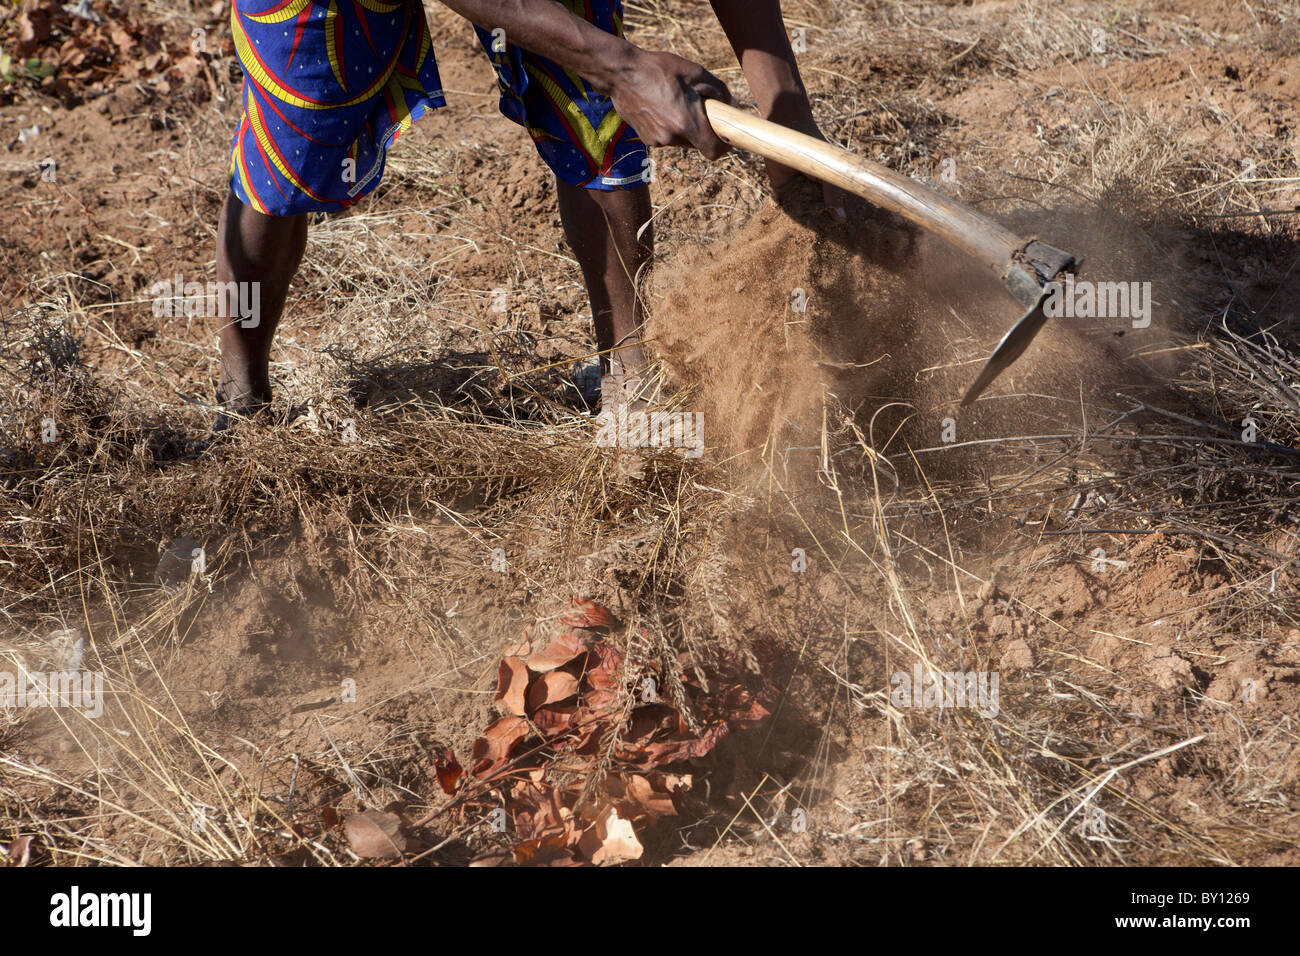 MECEBURI FOREST, NEAR NAMPULA, MOZAMBIQUE, May 2010: Farm labourers working to clear land for planting crops. - Stock Image